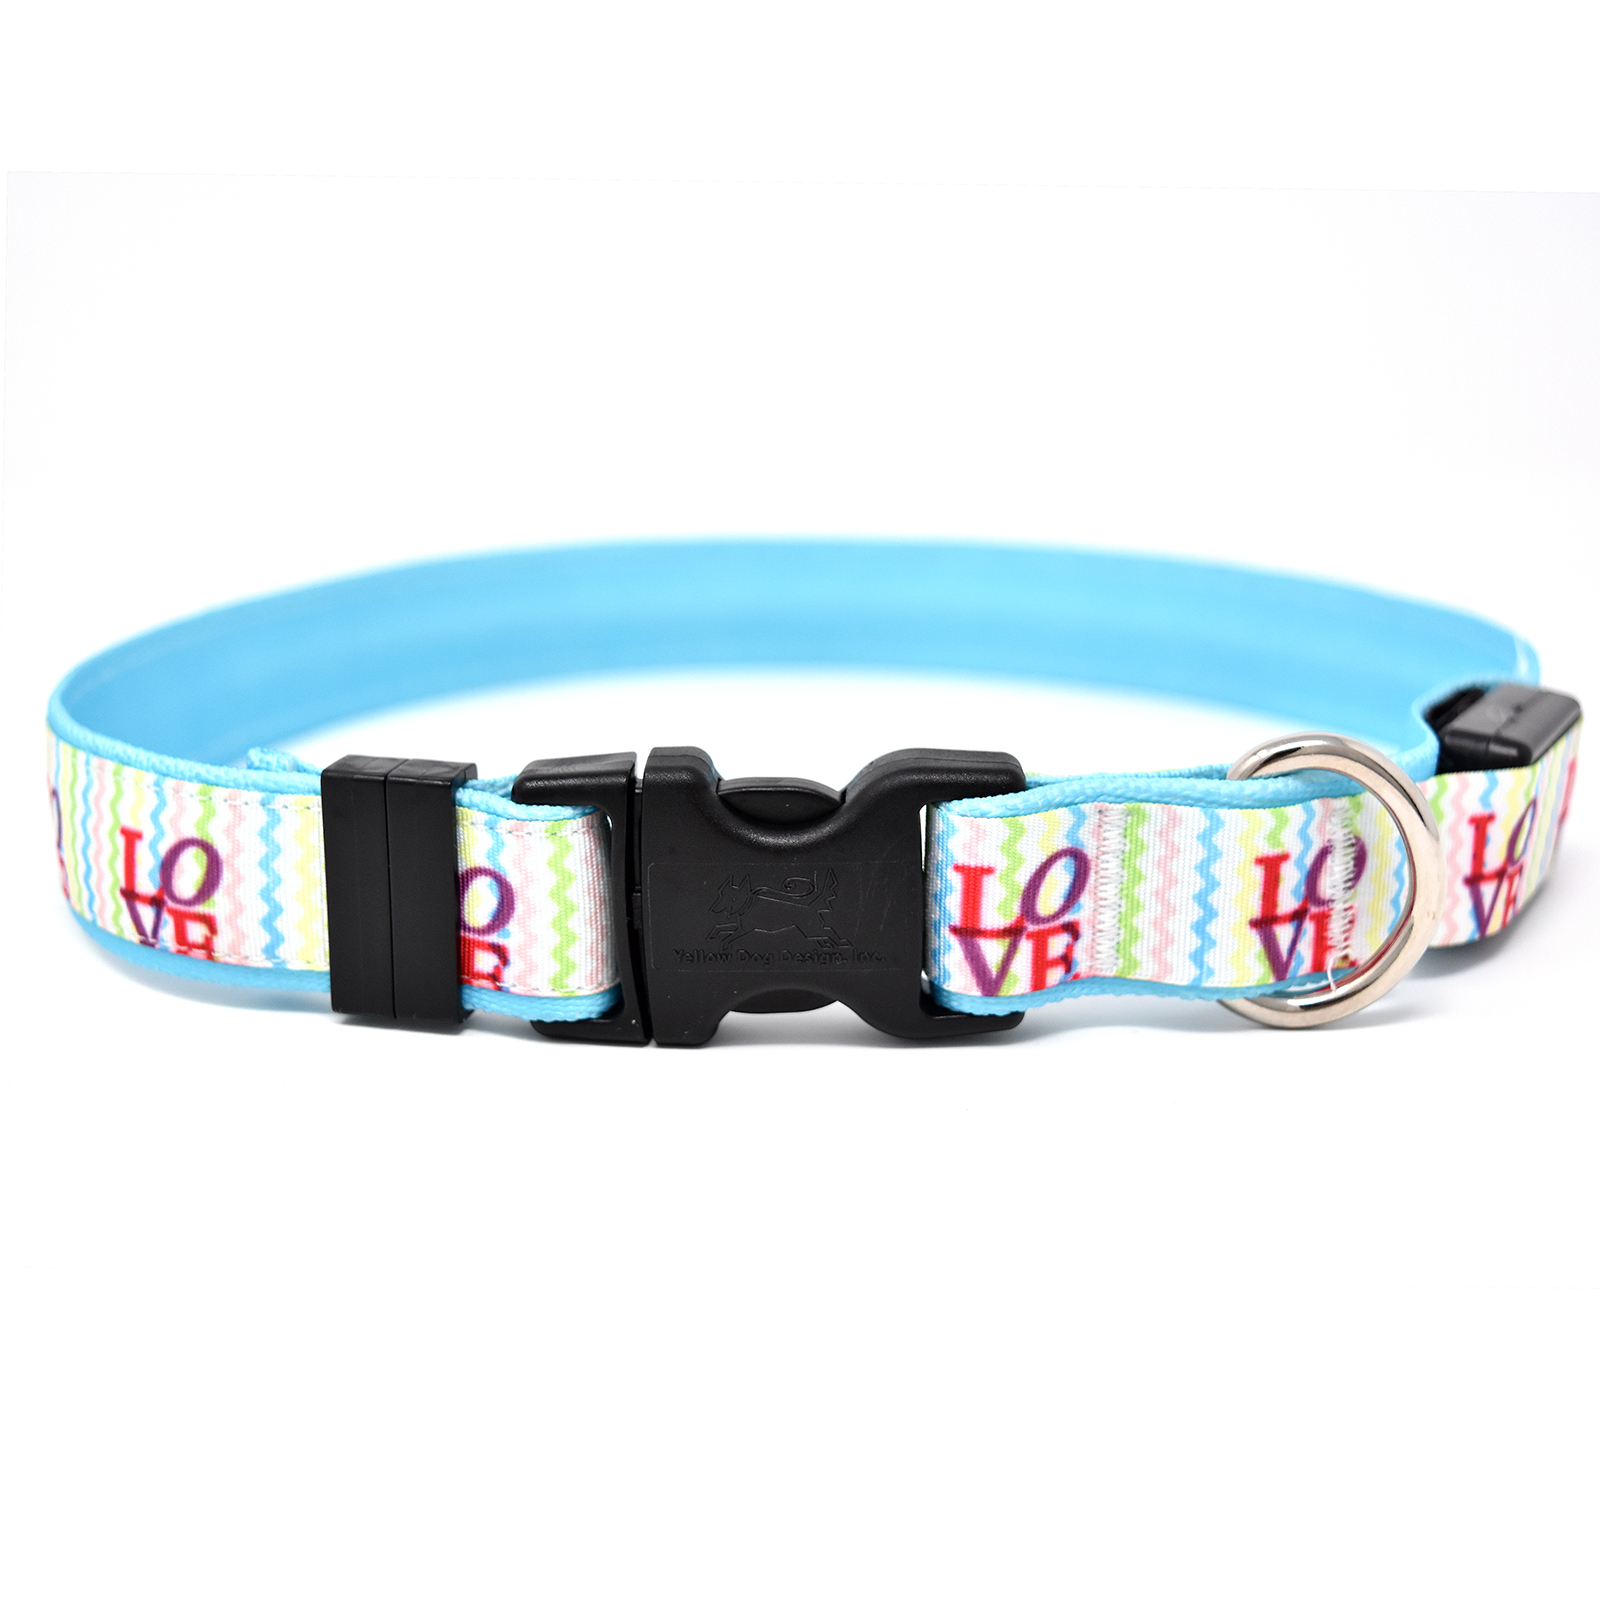 Love ORION LED Dog Collar